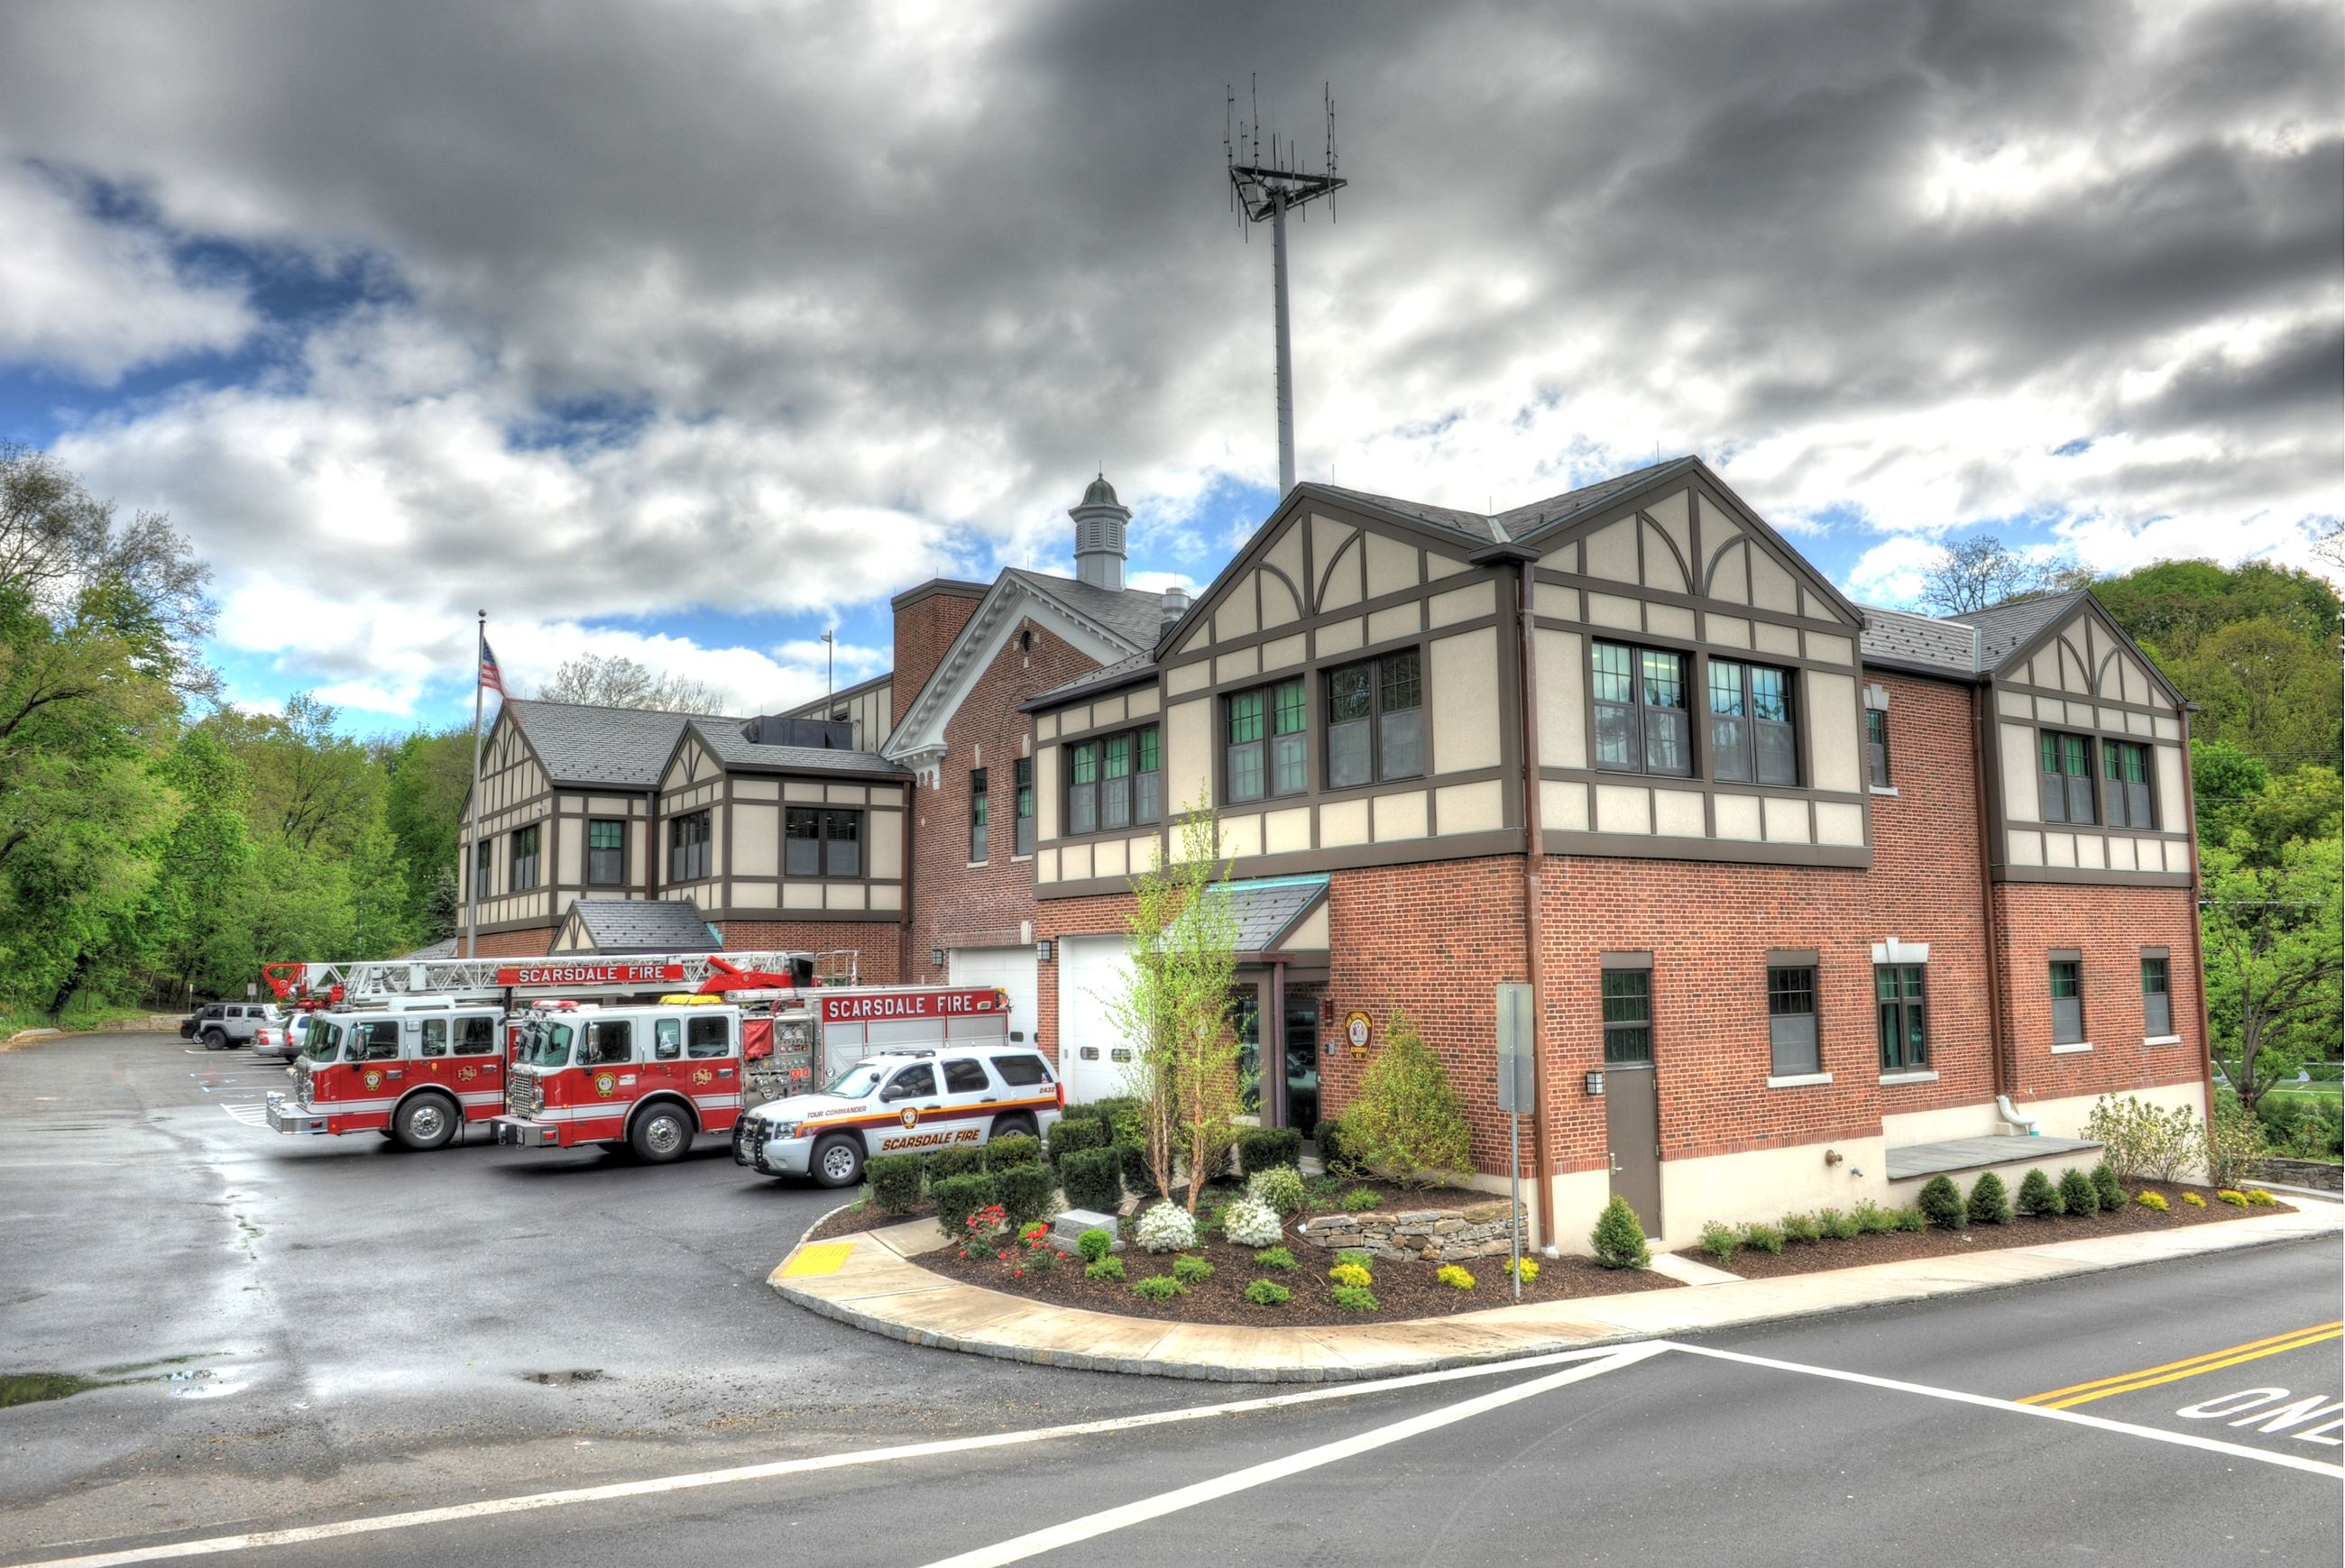 Fire Department Scarsdale NY - Map of new york state fire districts